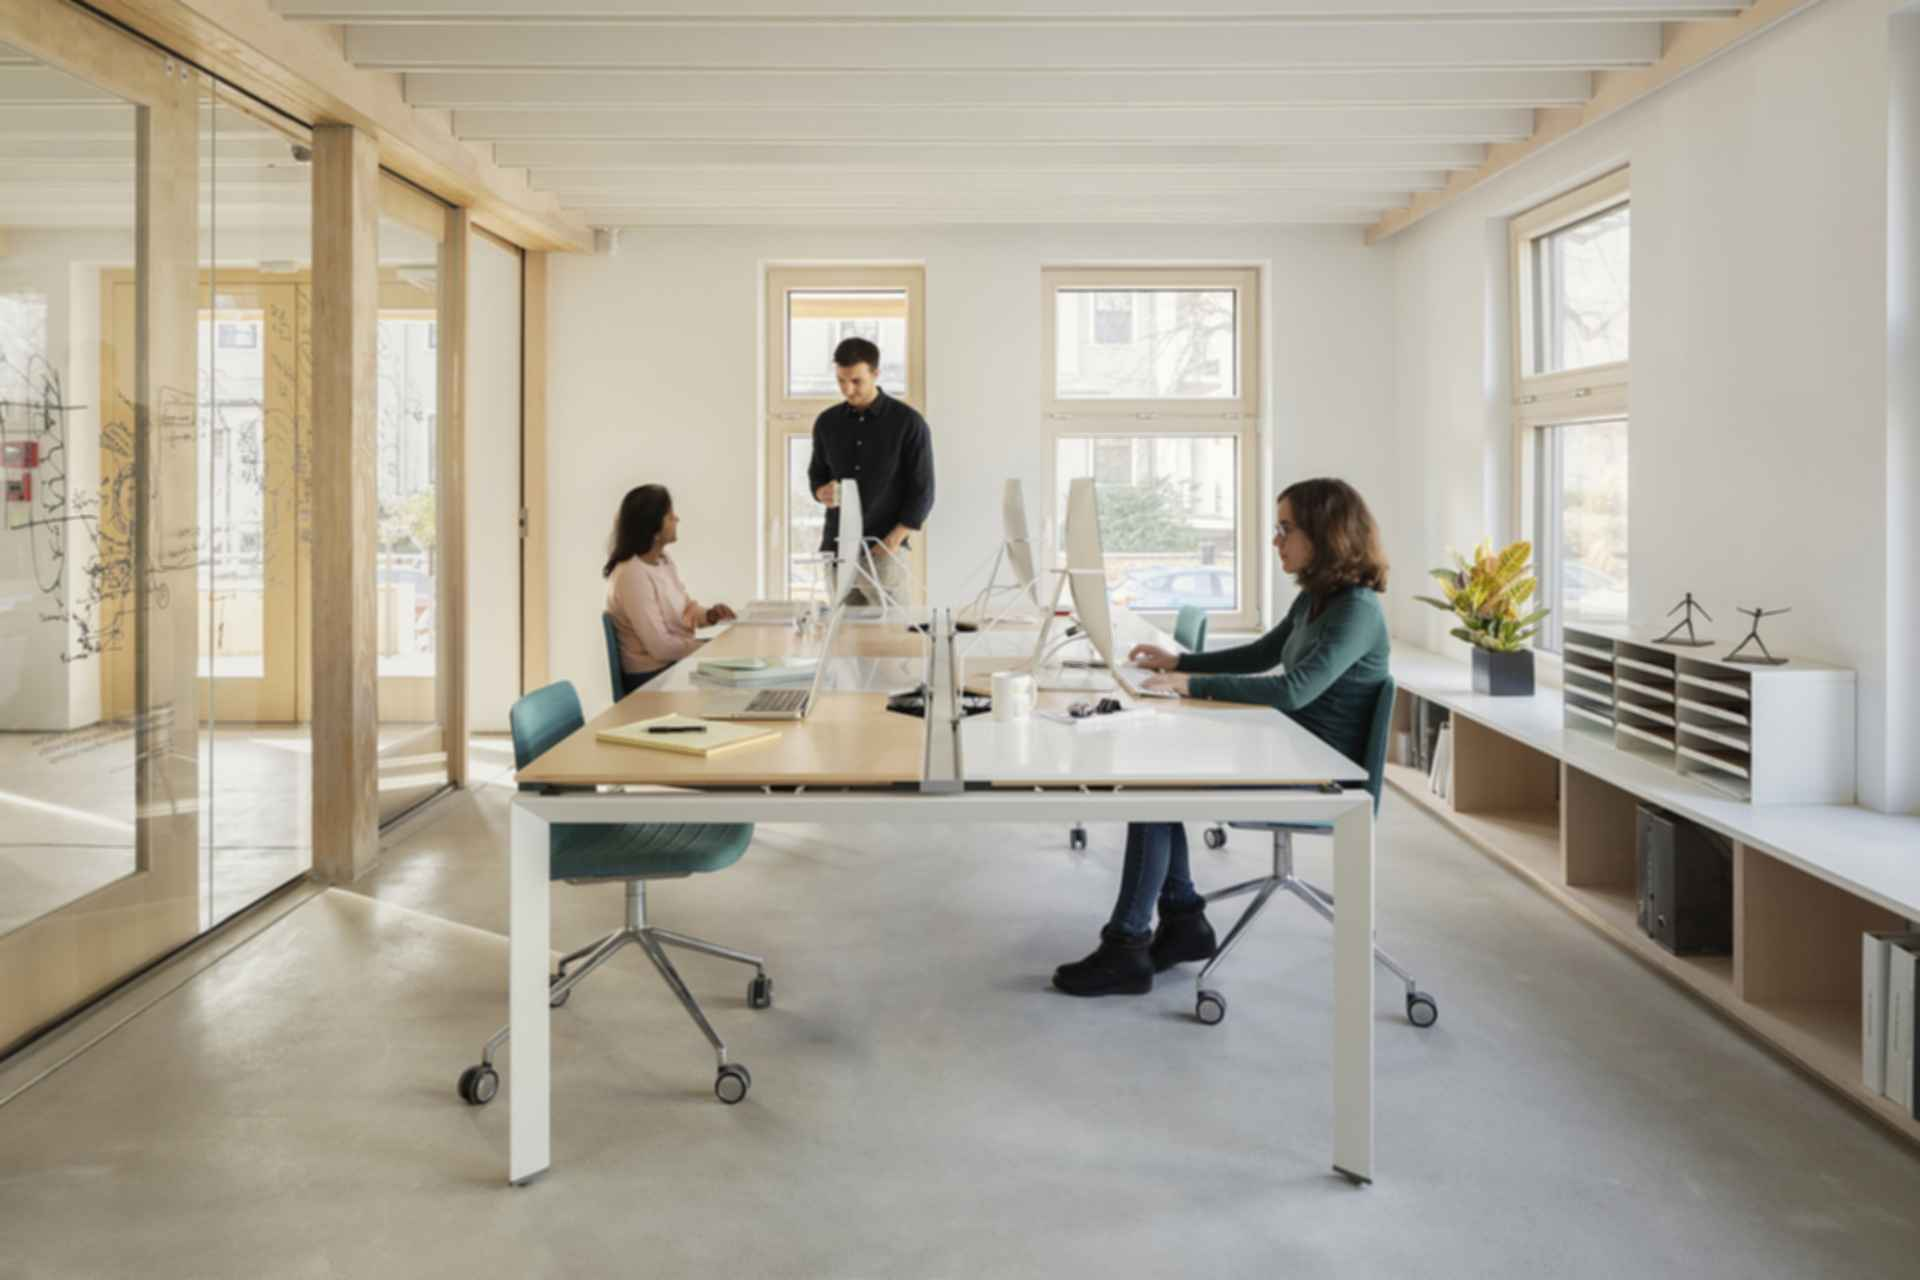 Harvard HouseZero - Offices